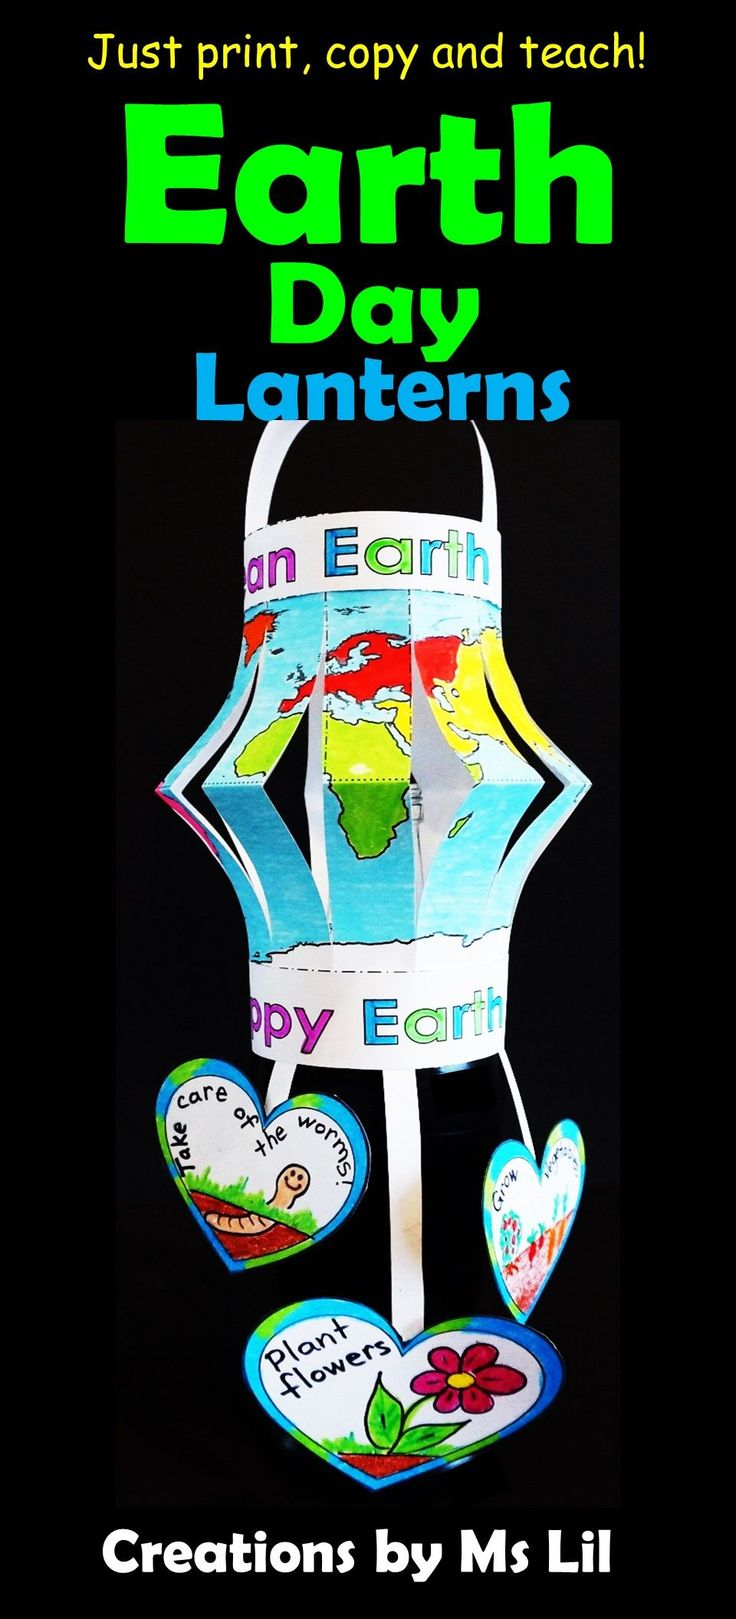 A fun, interactive Earth Day Craft that looks fantastic hanging from the classroom ceilings.  Your kids will love creating these Earth Day globes.  ::  ::  ::  ::  ::  ::  ::  ::  ::  ::  ::  ::  ::  ::  ::  ::  ::  ::  ::  ::  ::  Earth Day  ::  Earth Day Craft  ::  Fine Motor Crafts  ::  April 22  ::  Crafts for Kids  :: Earth Day Activities ::  Paper  Lanterns  ::  Ms Lil  ::  Environmental Education  ::  World Maps  ::  Globes  ::  3D Crafts  :: #earthdayactivties